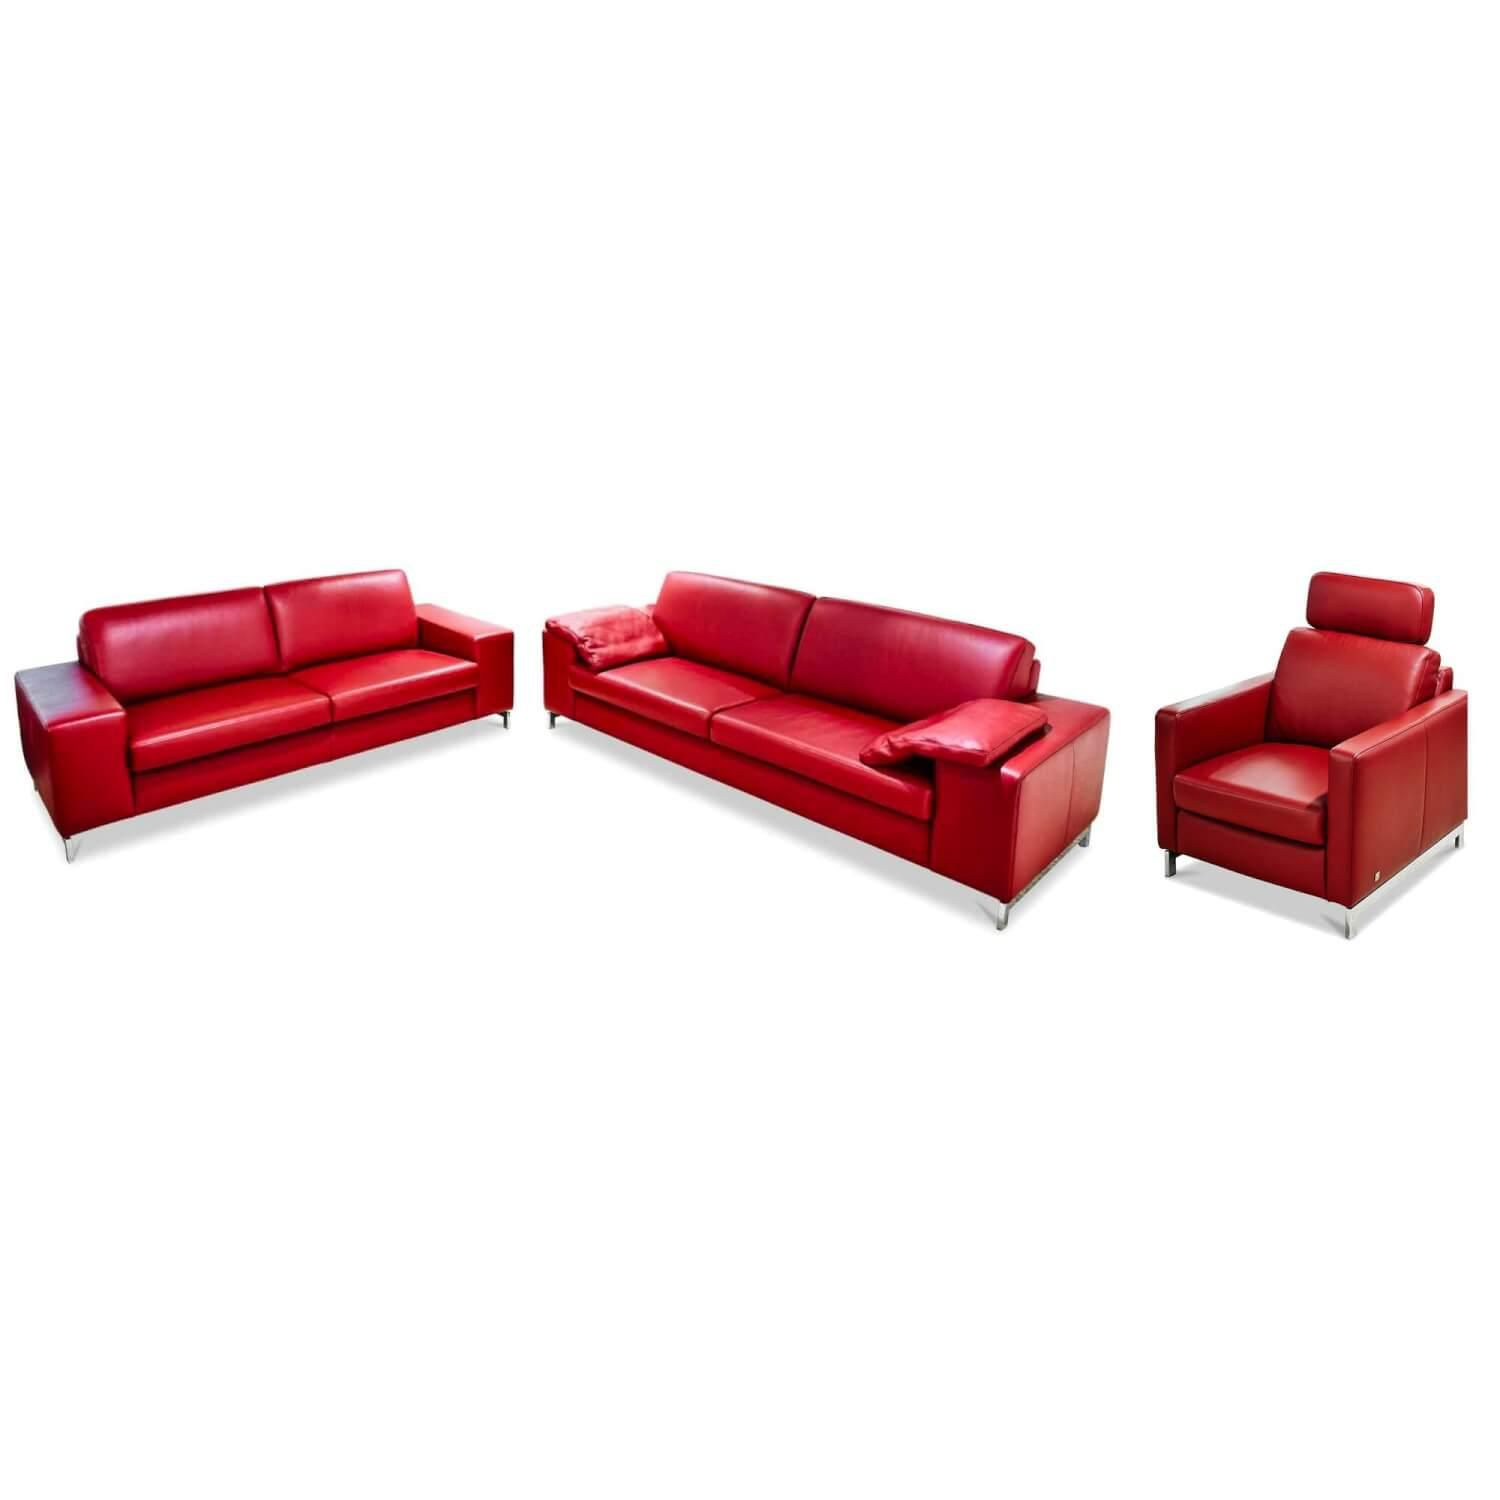 Garnitur Mr 2875 Leder Rot Sofas Sessel